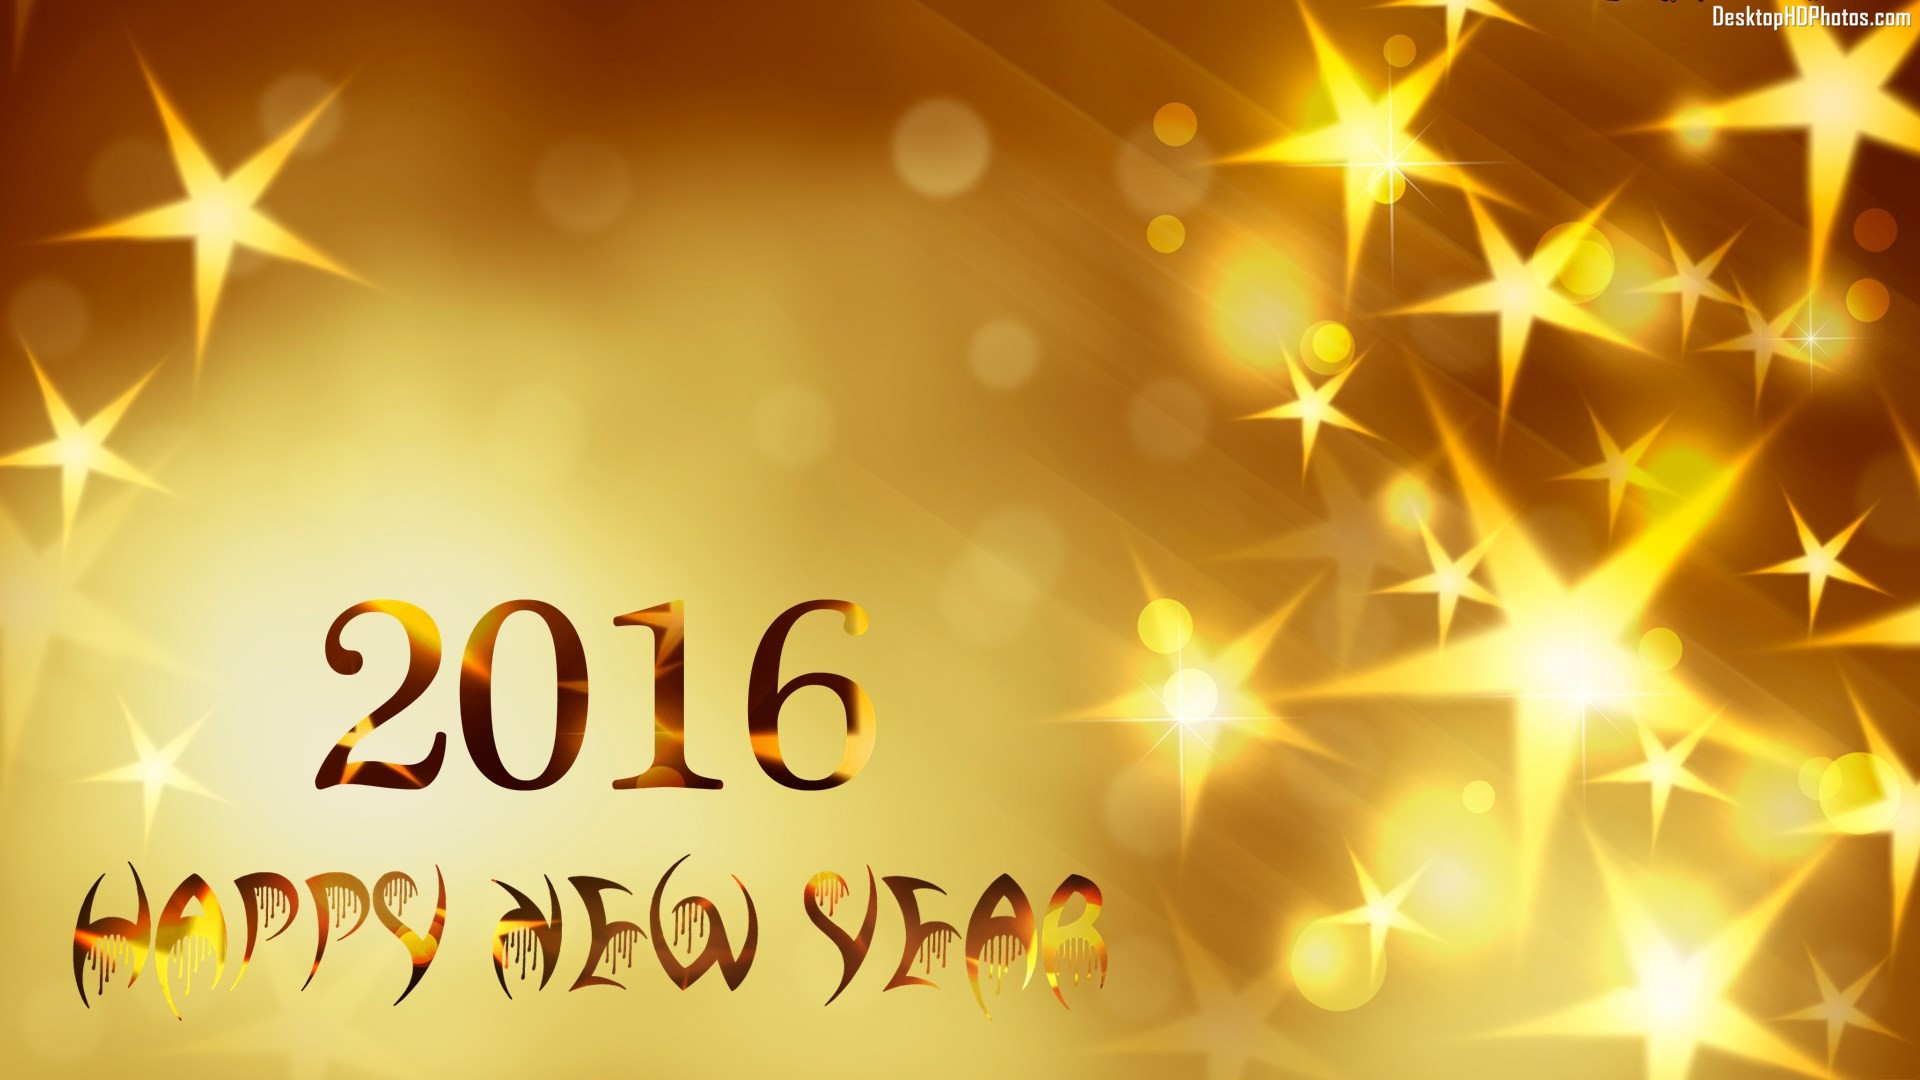 New Year 2016 Images HD Photos Wishes SMS Wallpapers Messages 1920x1080